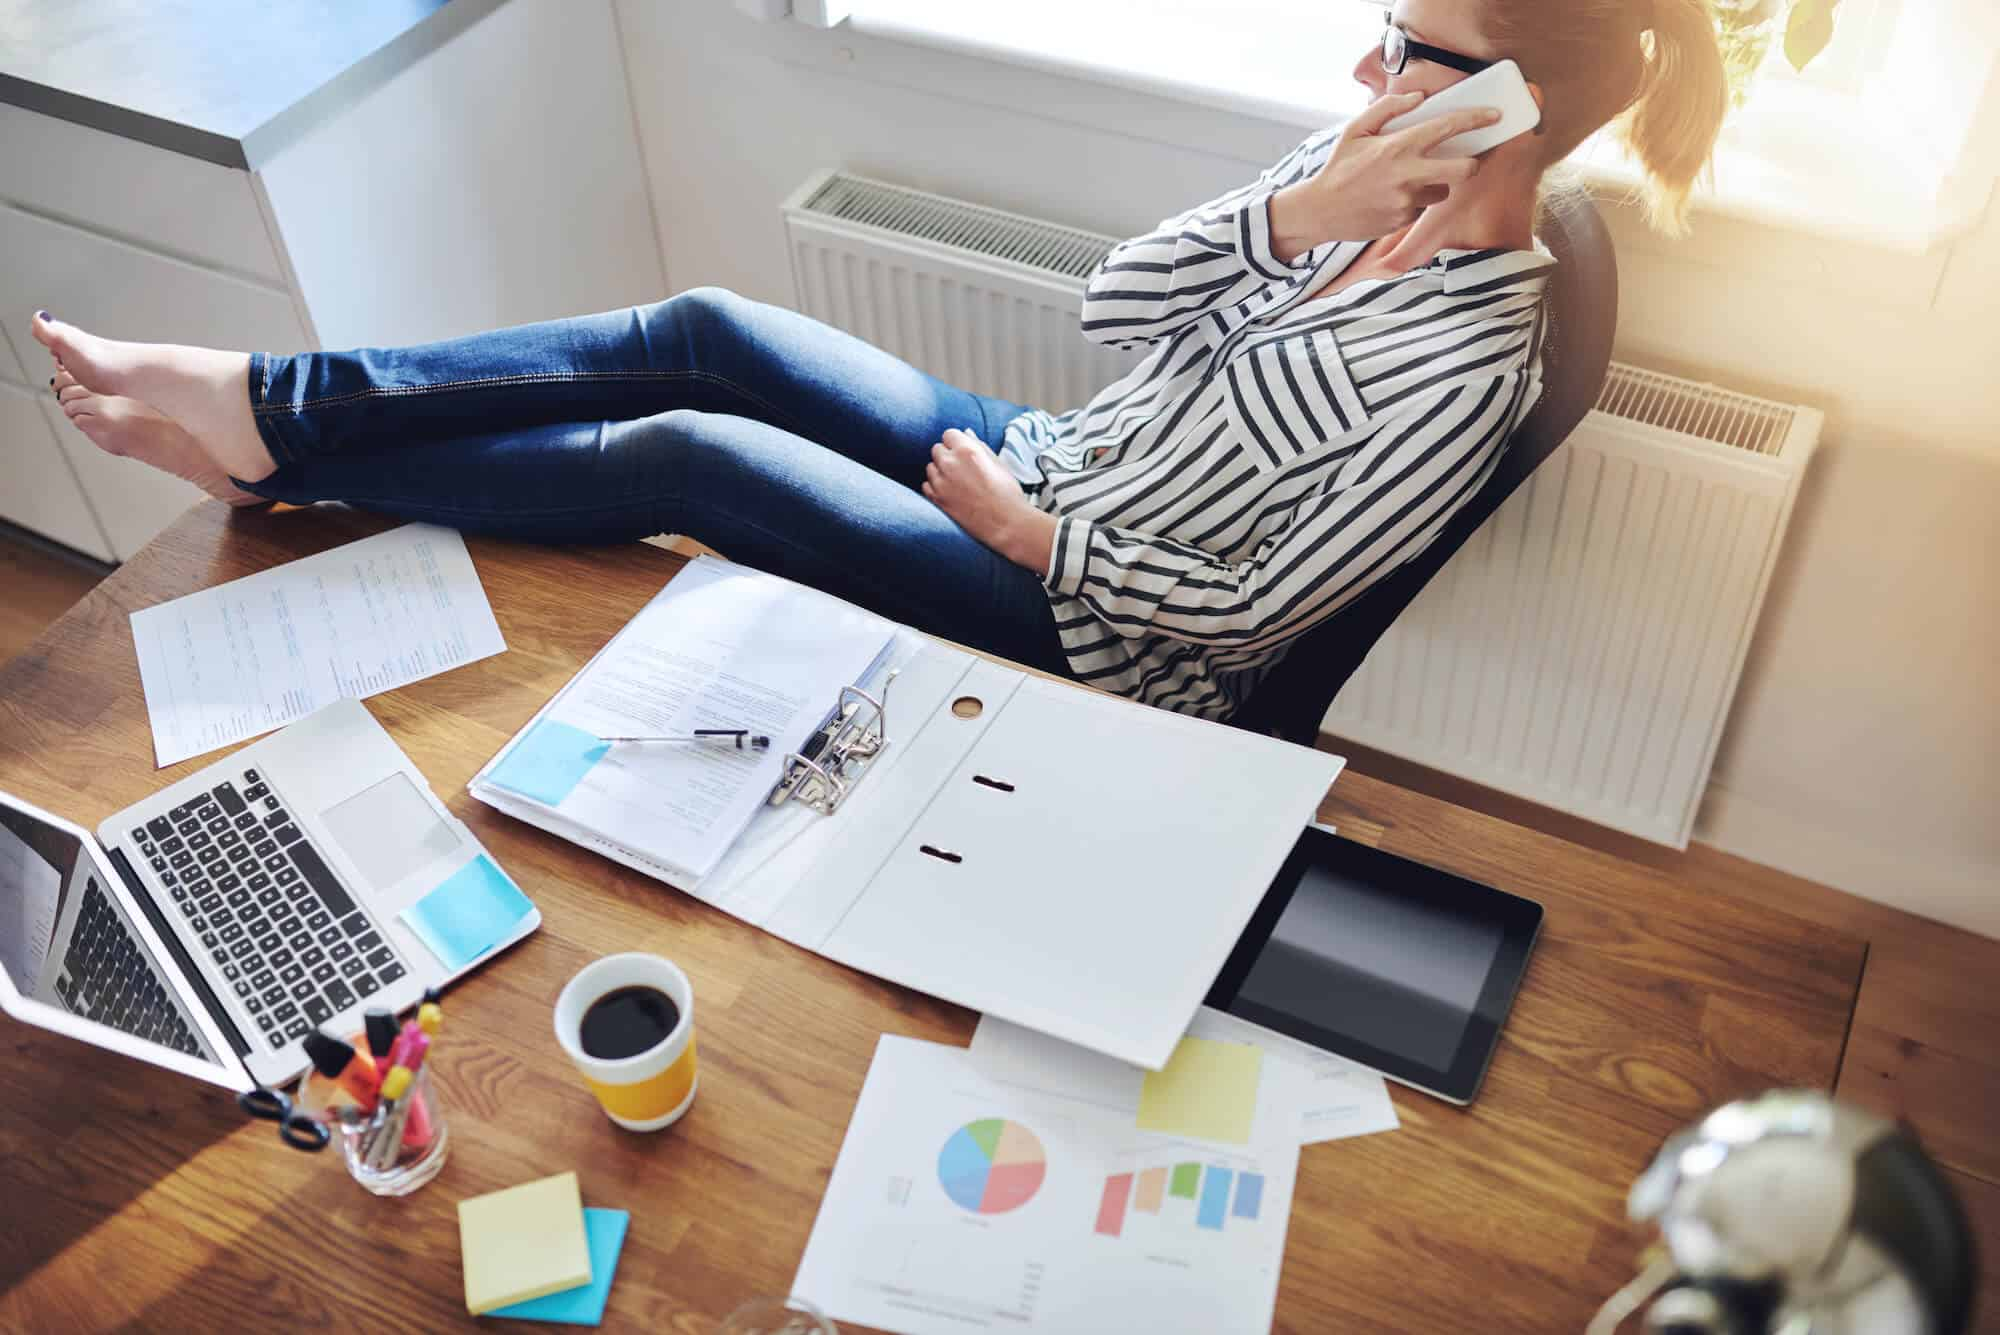 10 Tips for a Successful, Productive Day